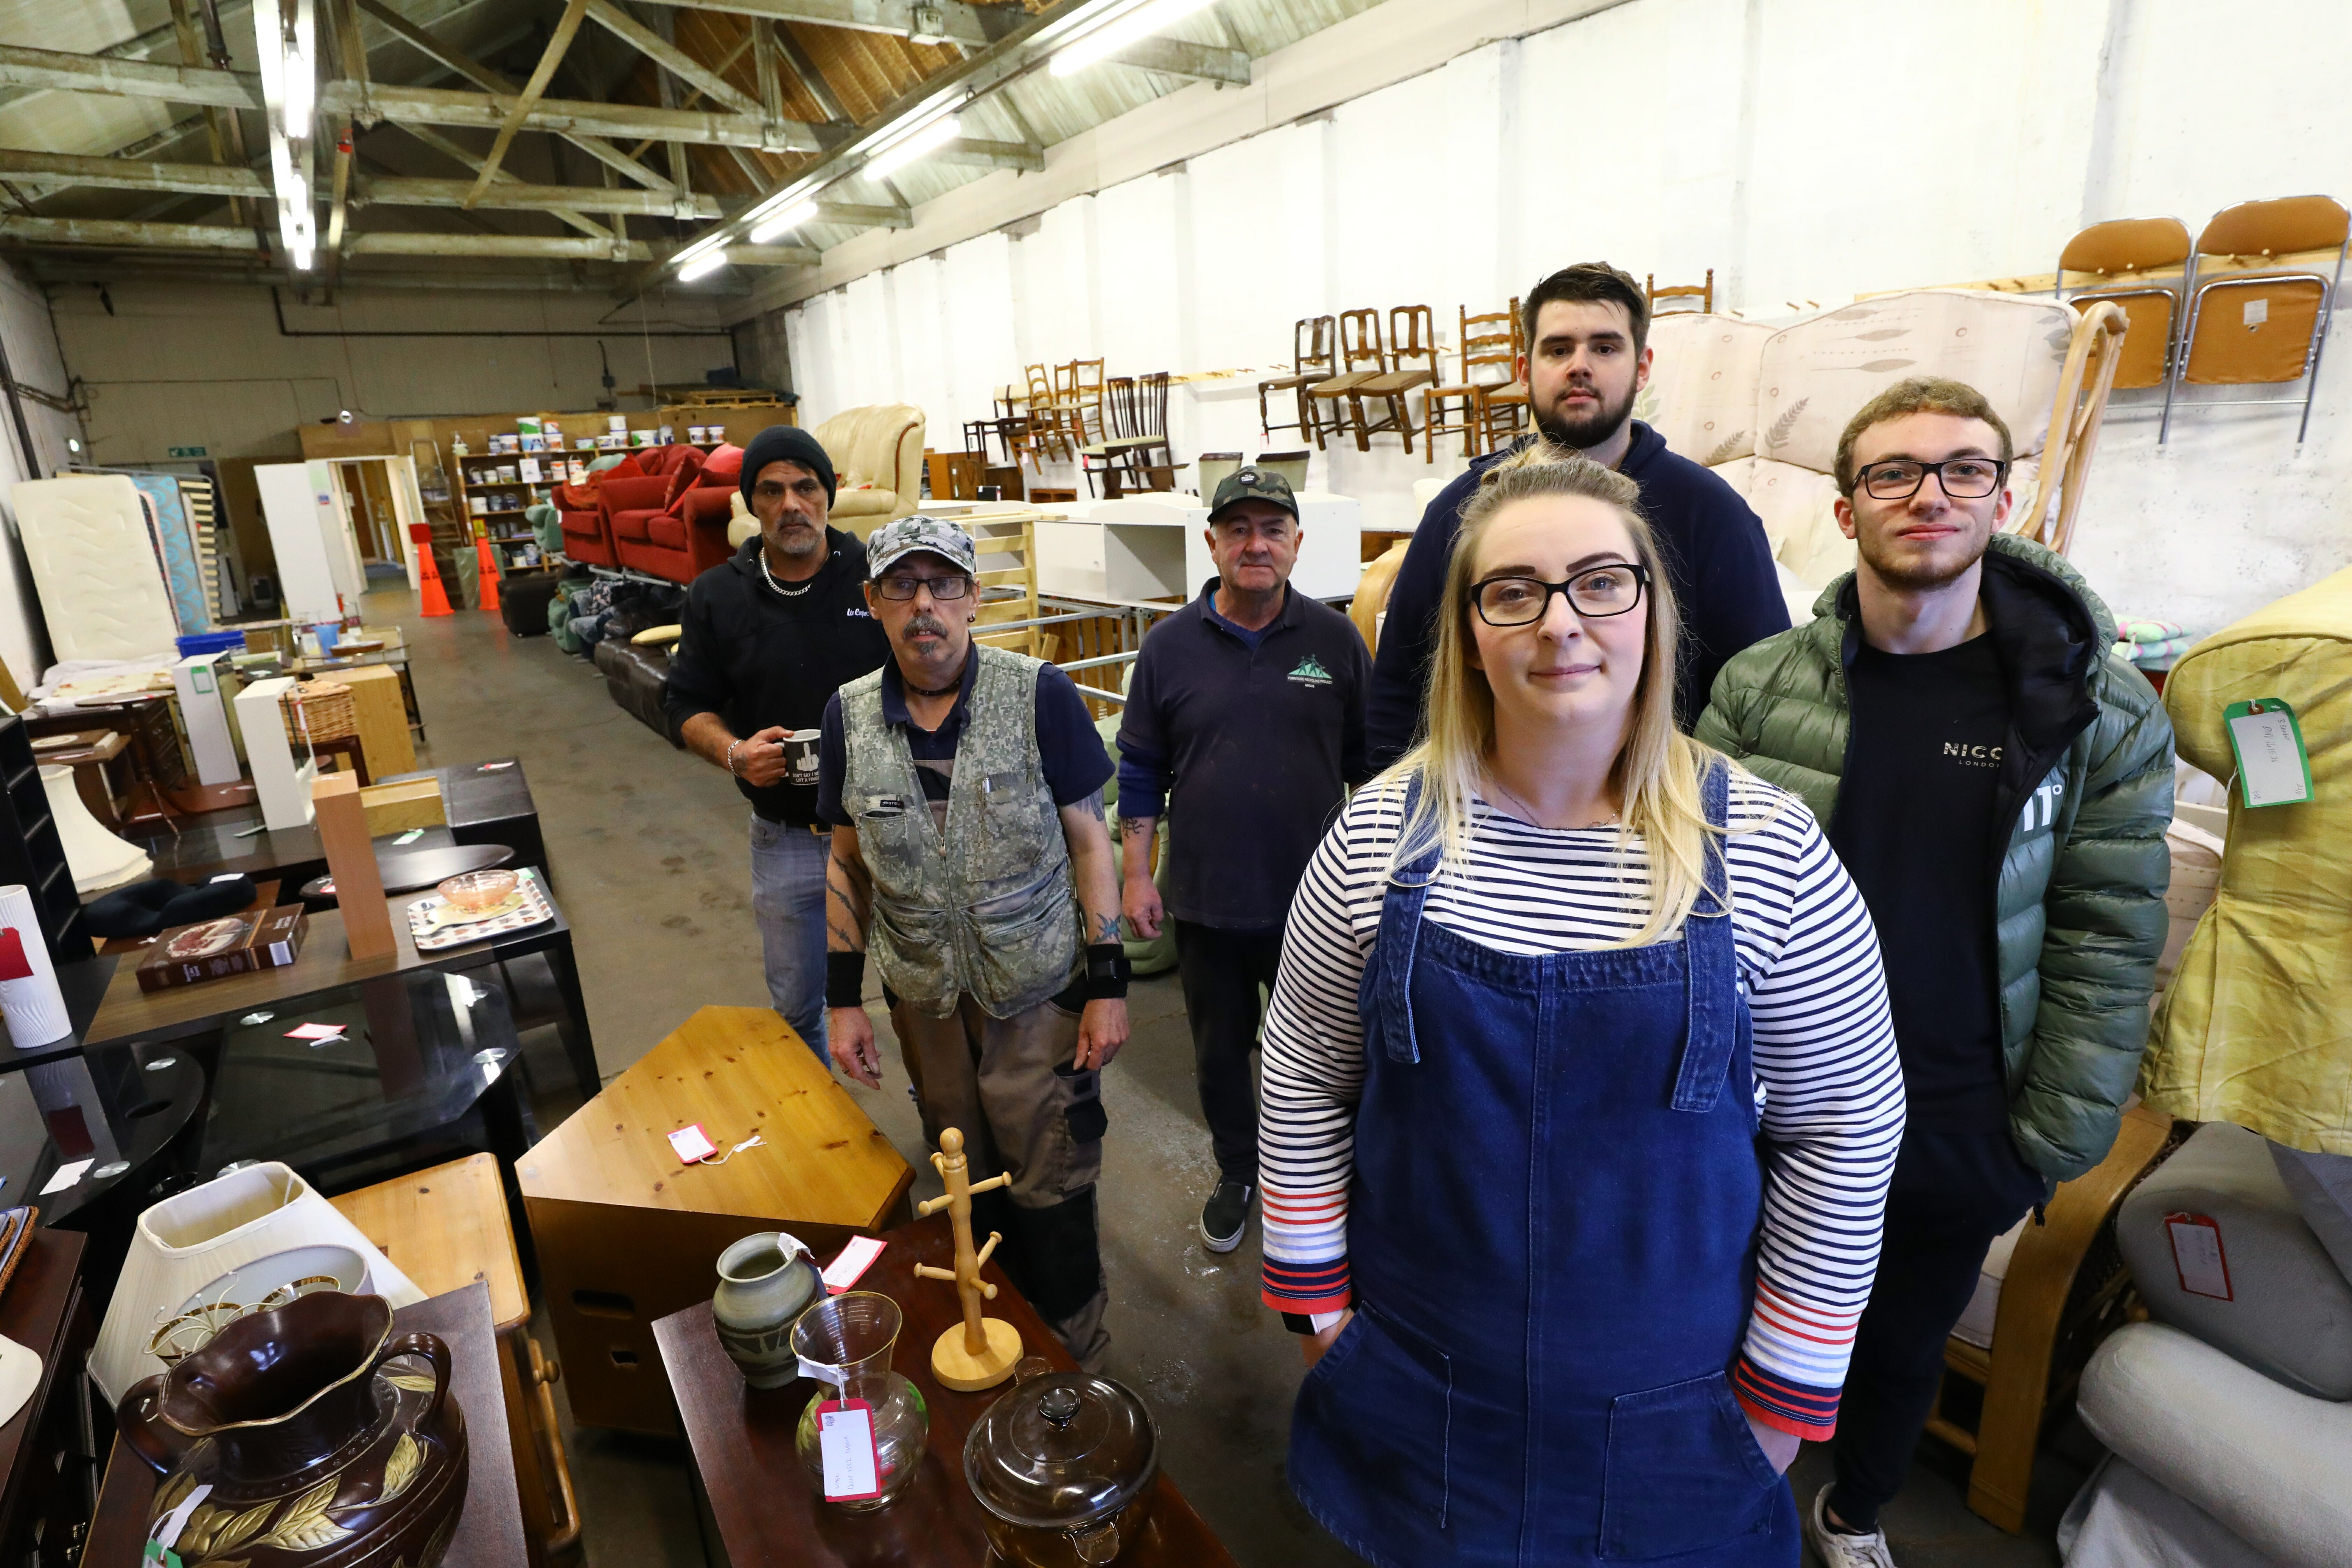 Elaine Duff, manager, at the Furniture Recycling Project Angus, in Arbroathwith volunteers Garry Brown, Martyn MacKinnon, John Mitchell, Ryan Bond and Craig Methven.